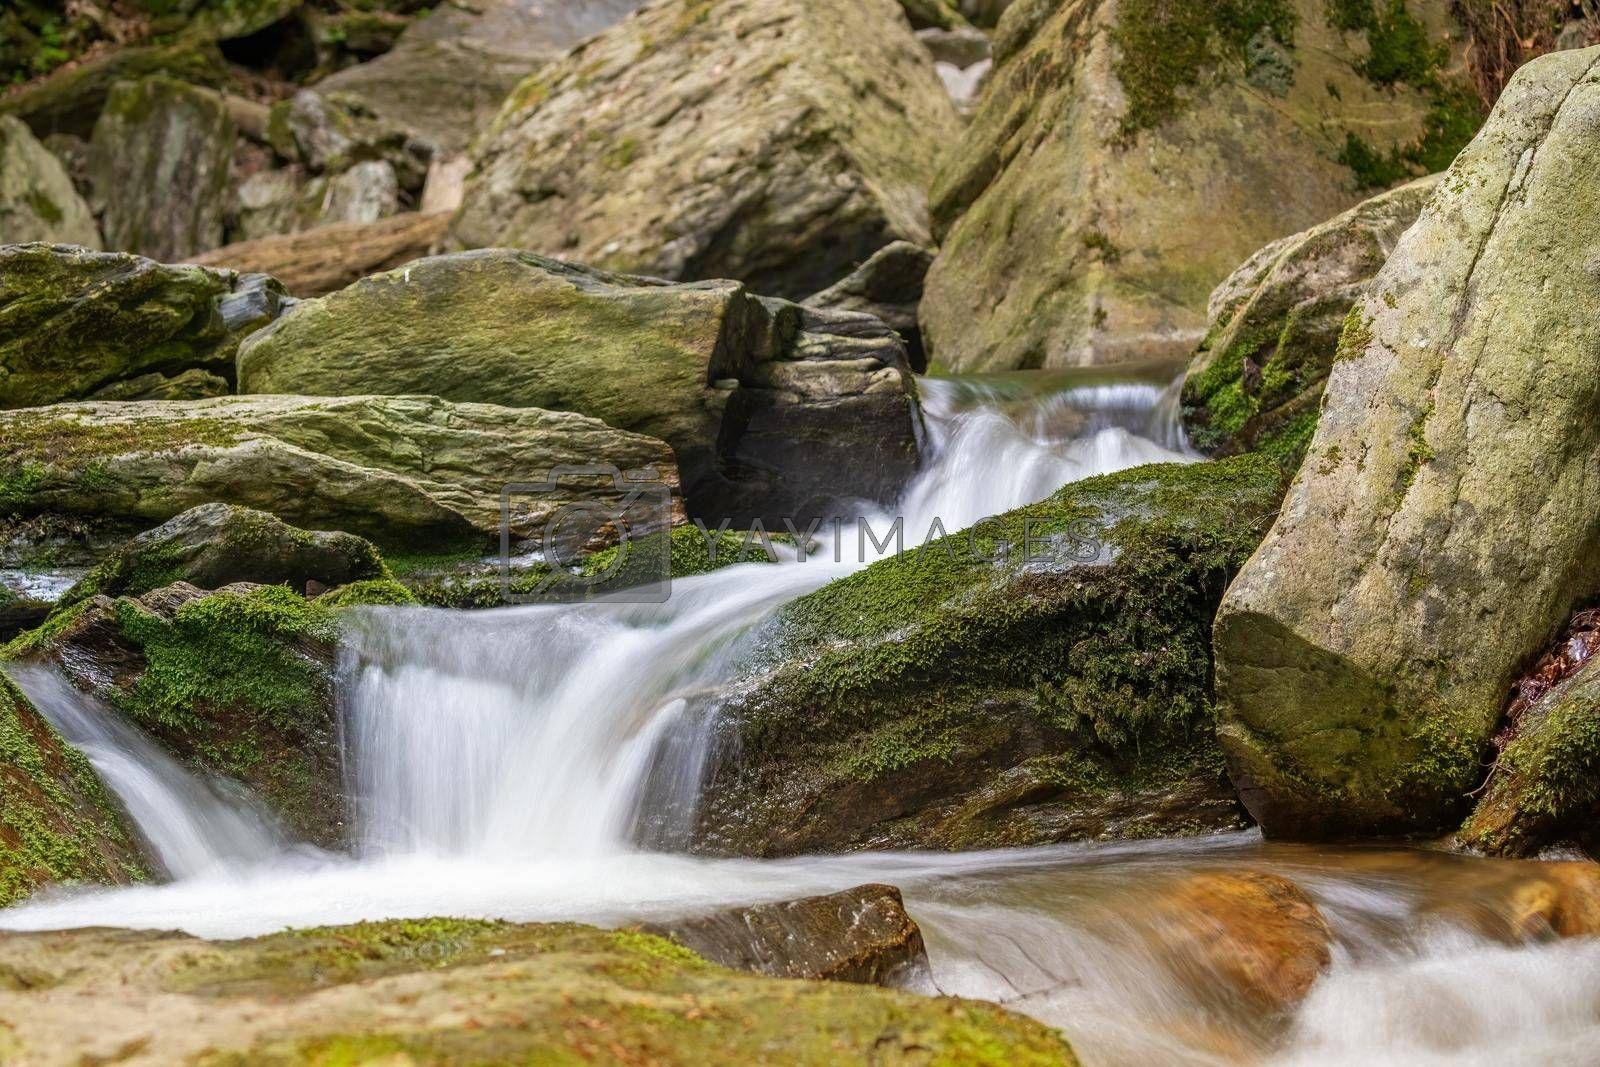 Royalty free image of Silky effect of cascades of running water in a brook closeup. by Frank11